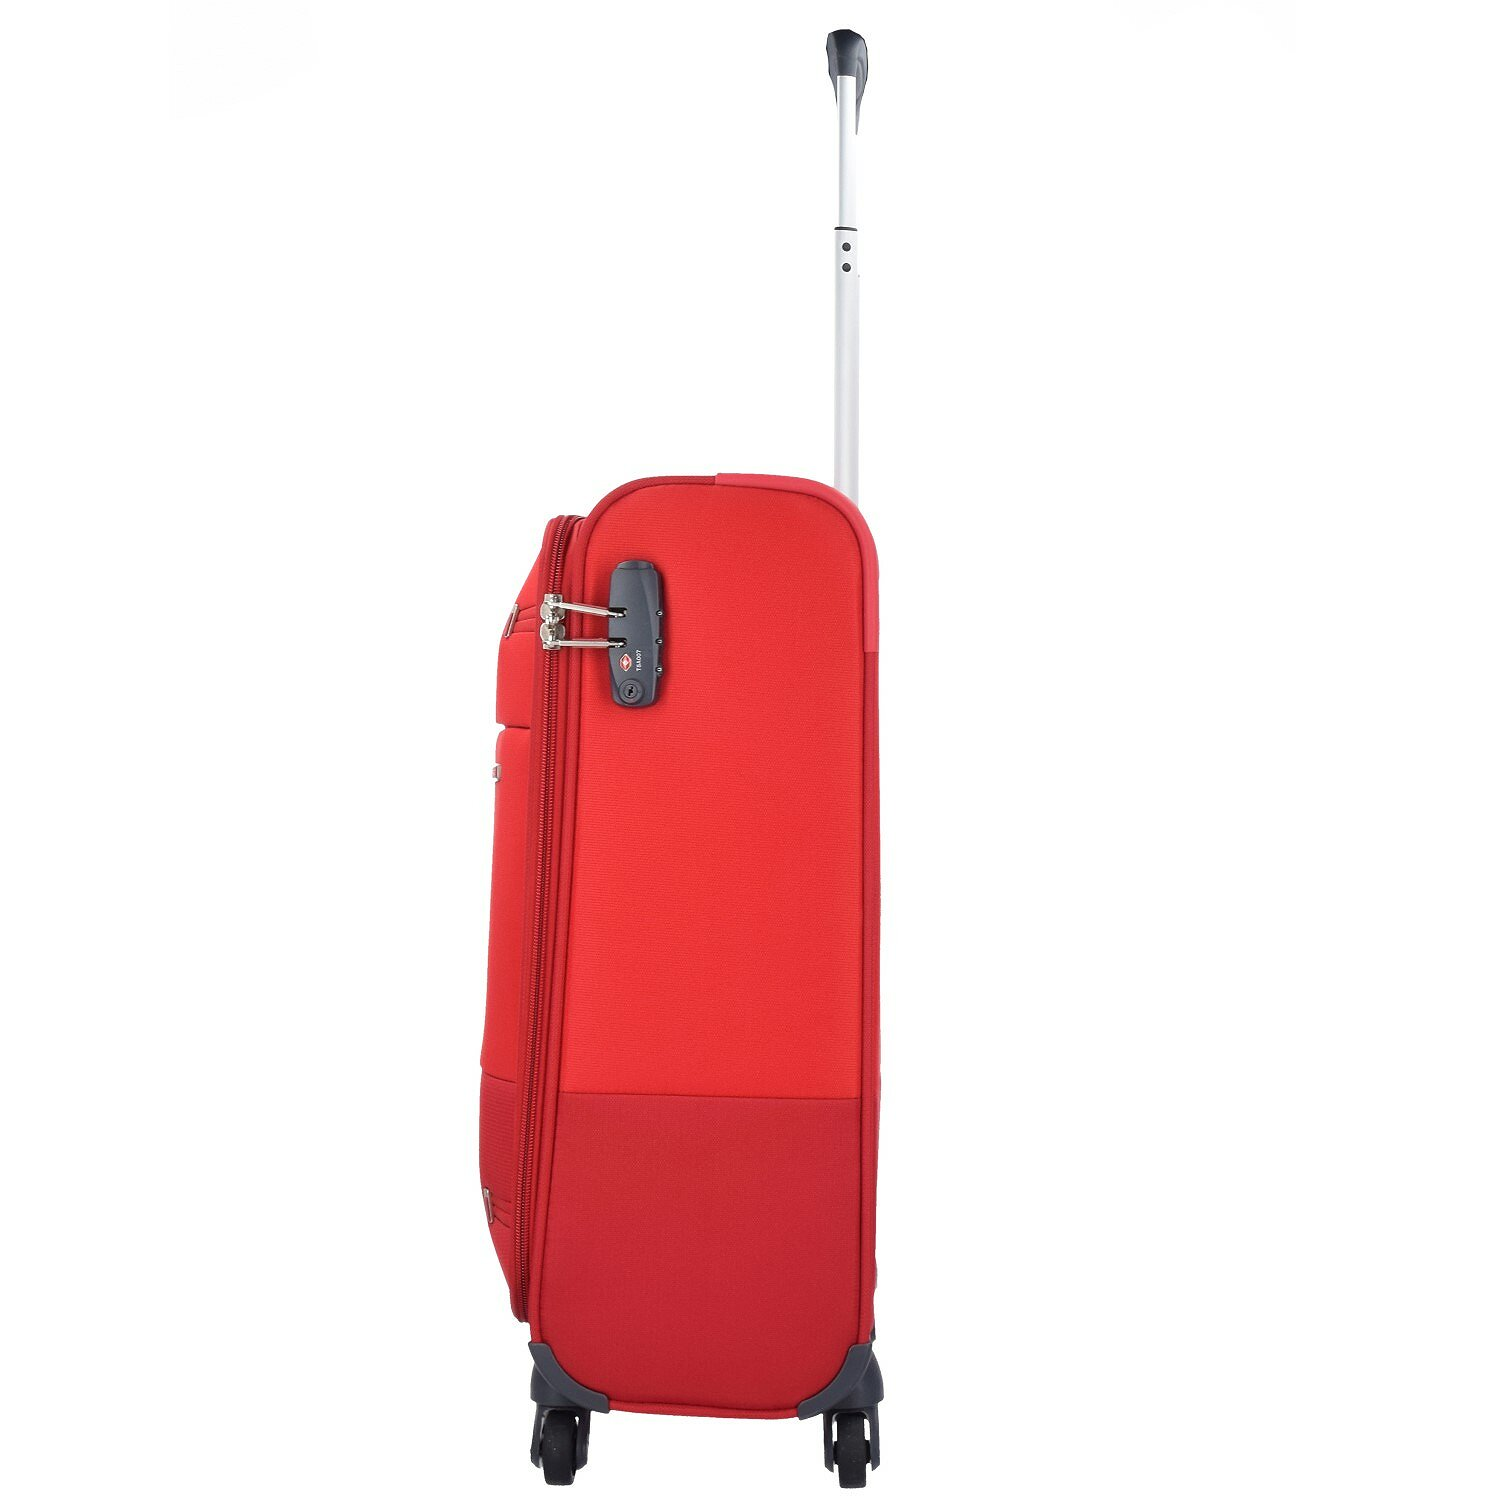 samsonite base boost spinner 4 rollen kabinentrolley 55 cm red black bei premium mall. Black Bedroom Furniture Sets. Home Design Ideas